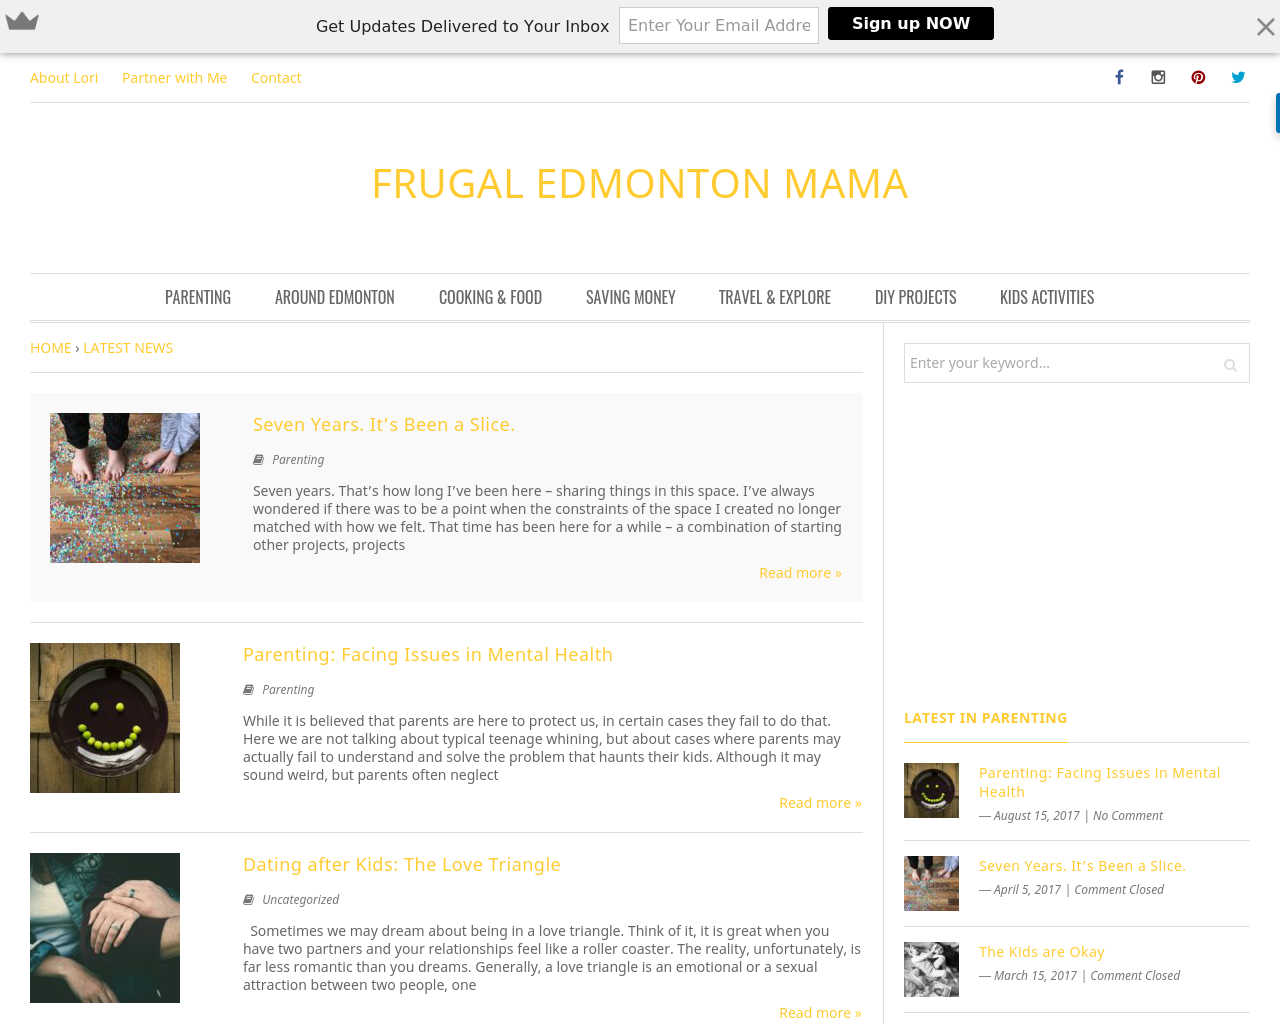 Frugal-Edmonton-Mama-Advertising-Reviews-Pricing